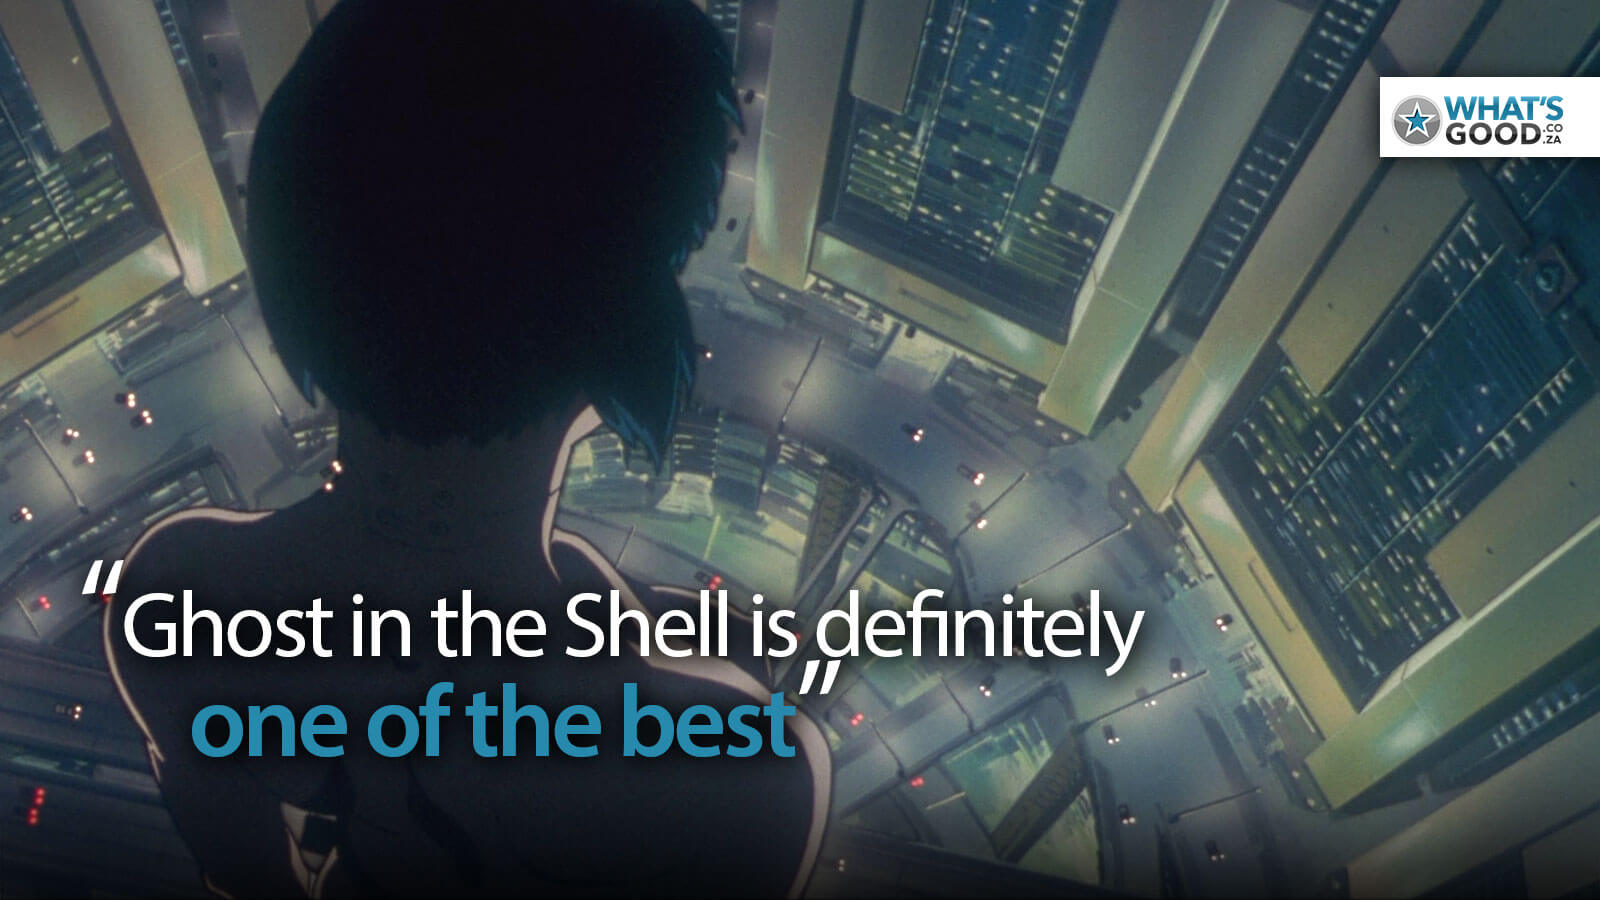 Ghost in the shell anime movie screenshots and quote